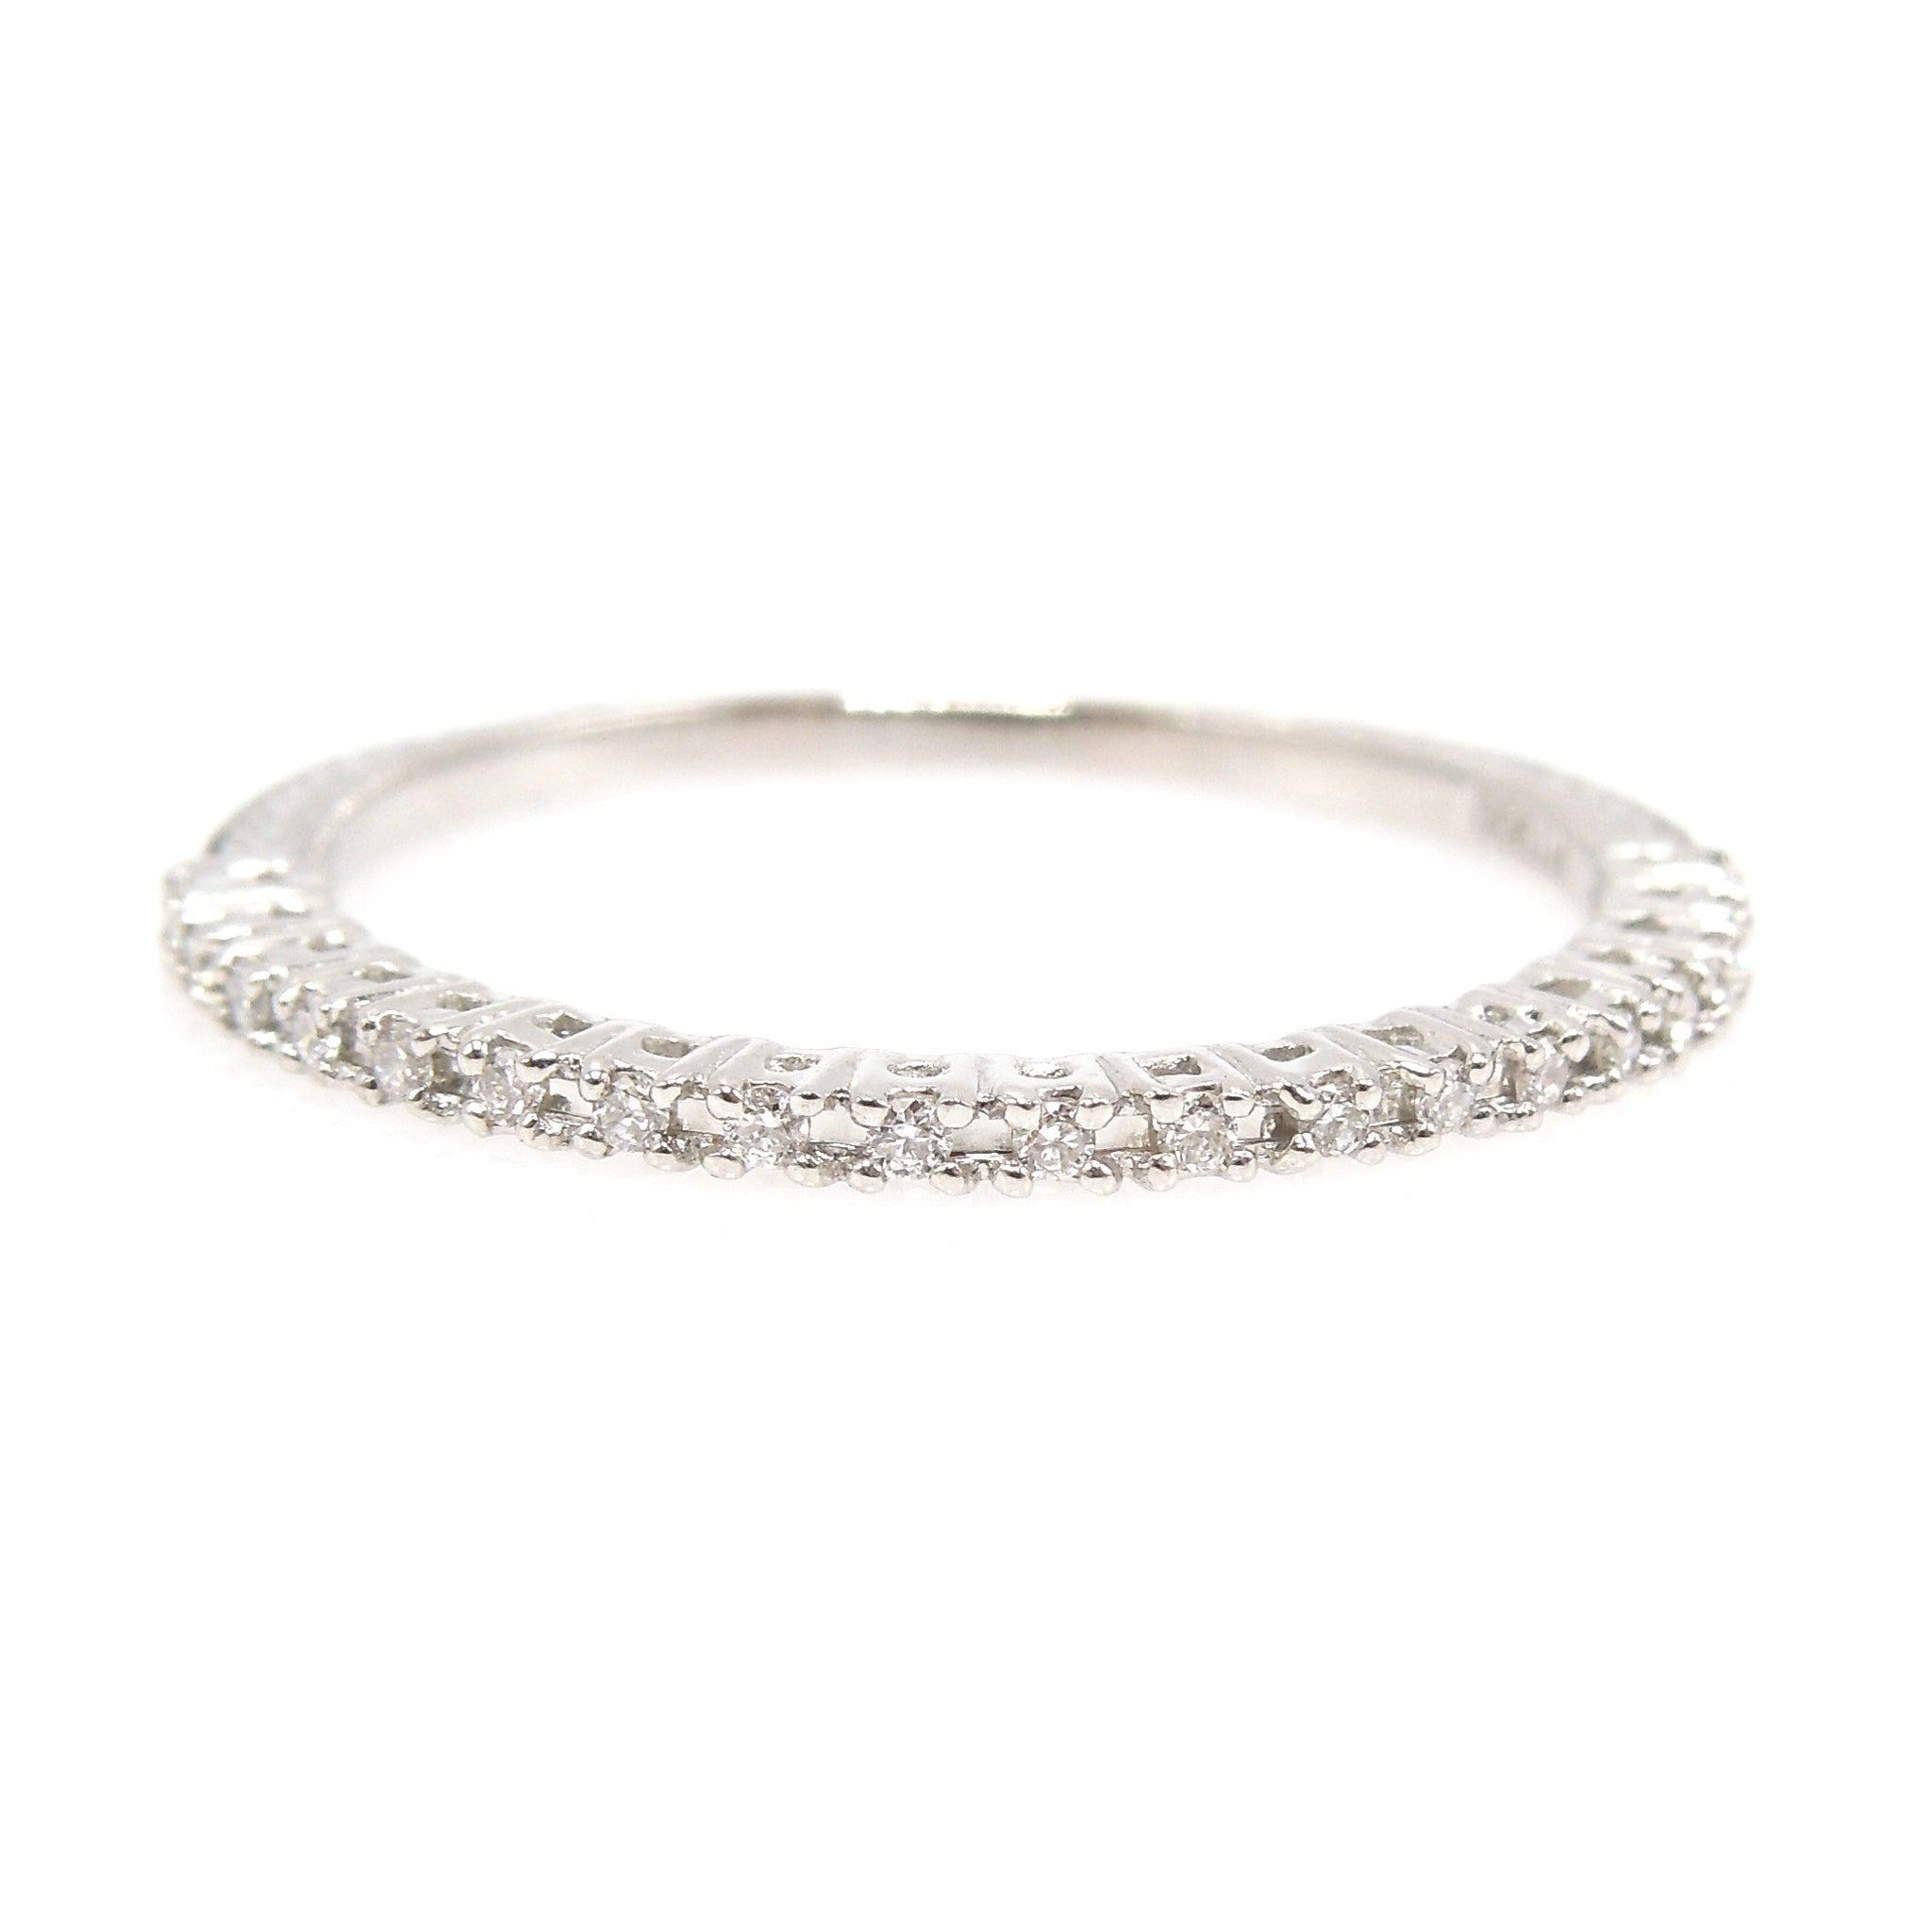 Narrow Platinum and Diamond Band - Perfect for Stacking